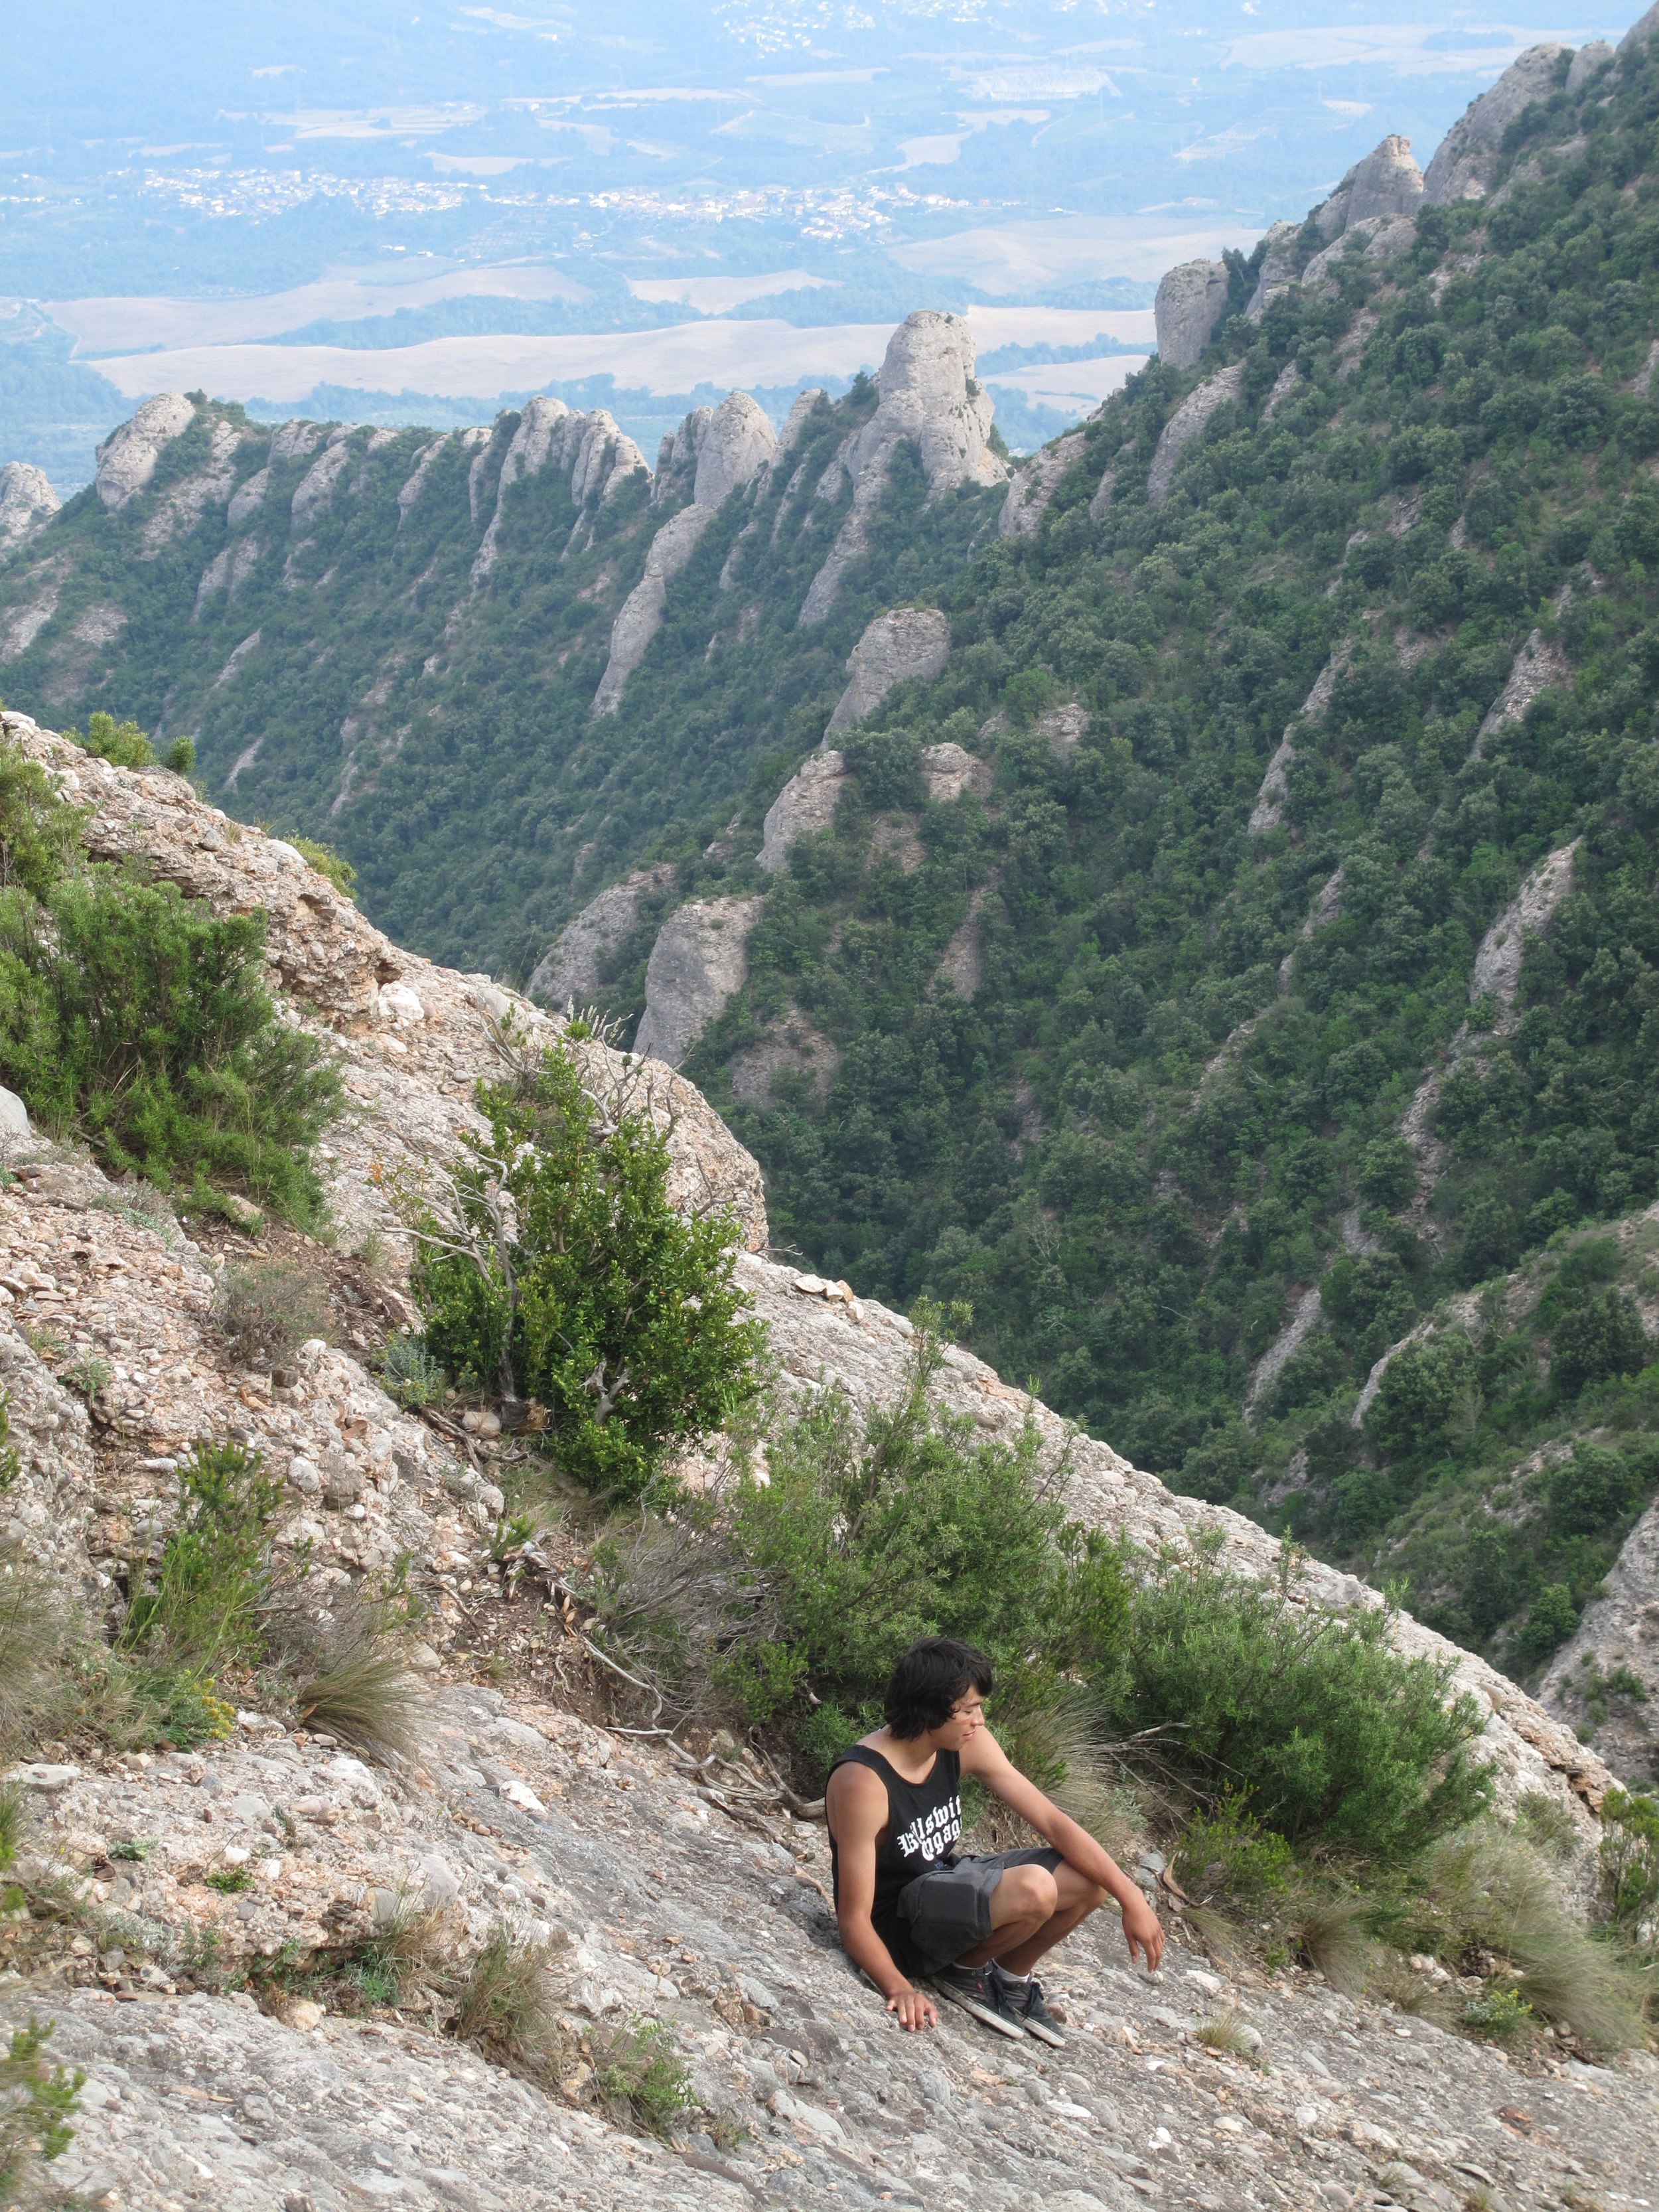 Sitting on the mountains of Montserrat above Catalonia